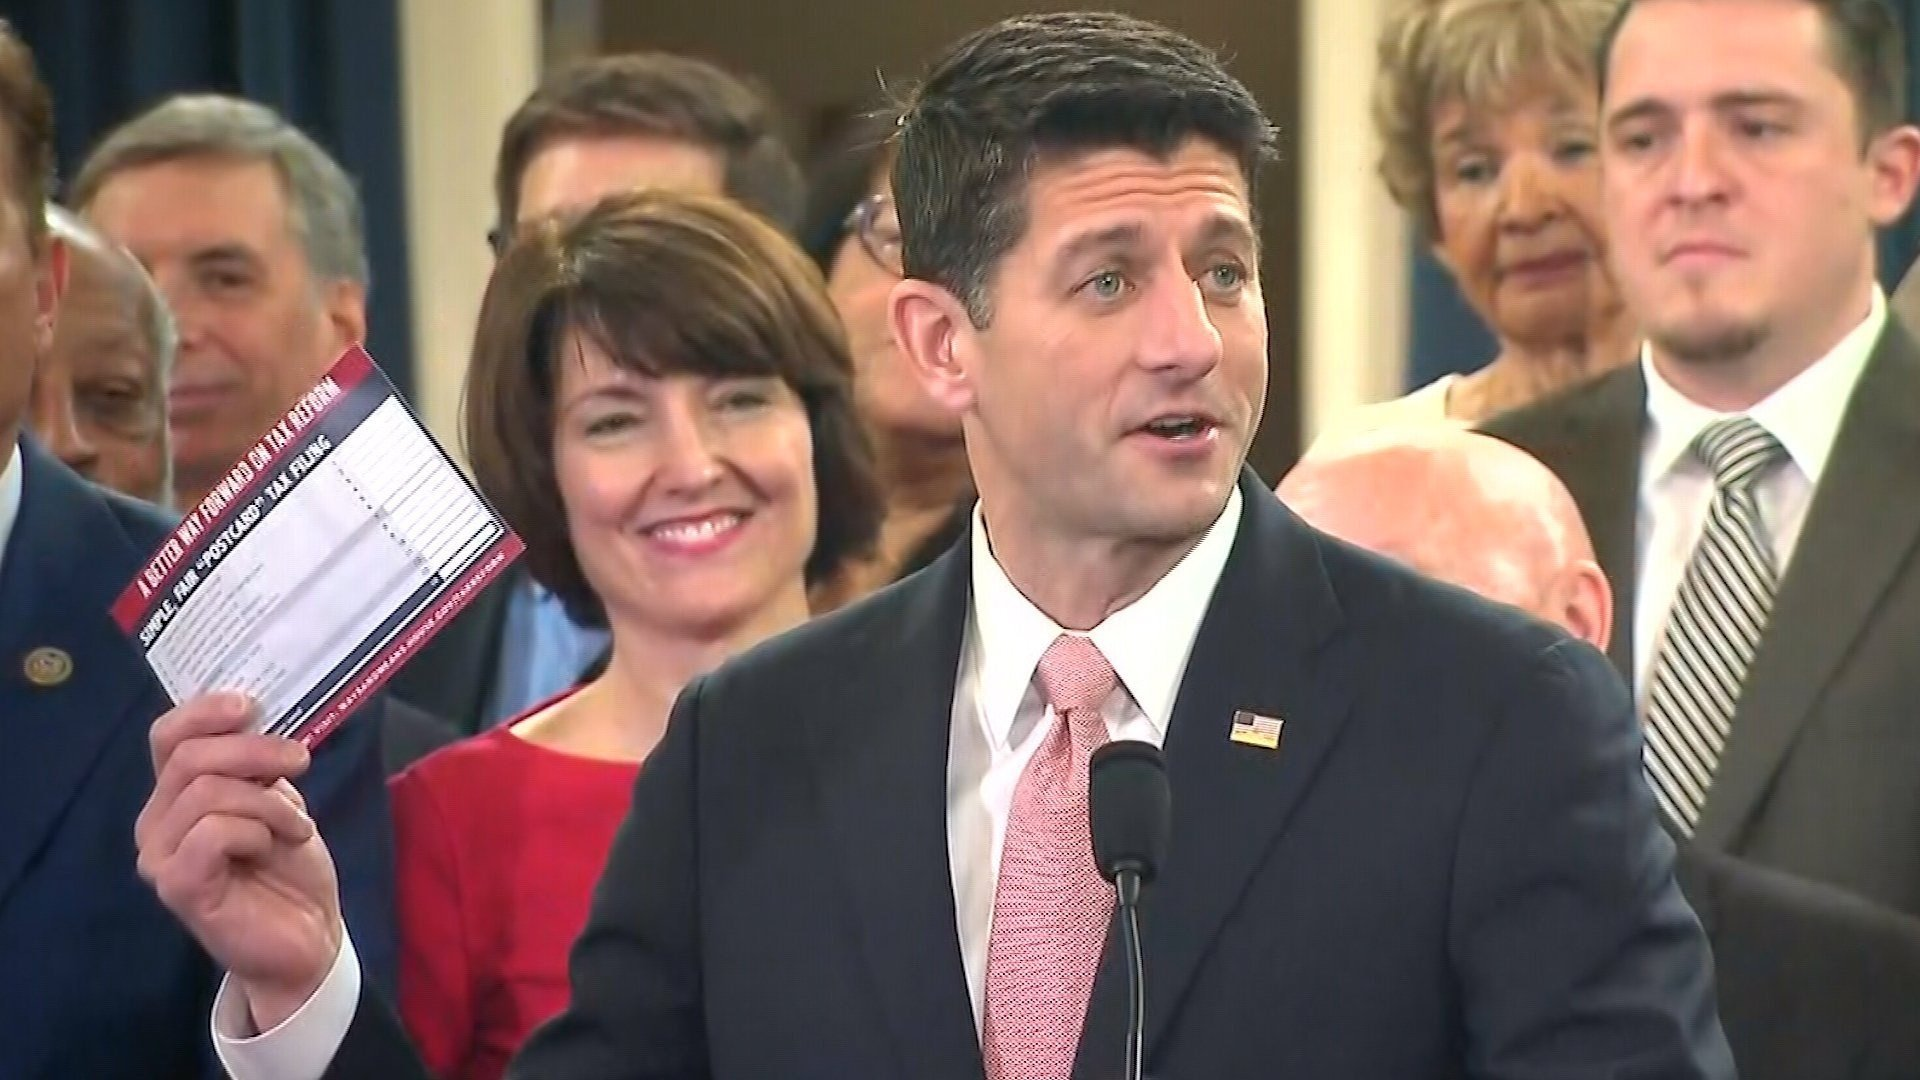 Repealing Obamacare's individual mandate would give GOP lawmakers an additional $338 billion over 10 years to help pay for their proposed tax cuts.